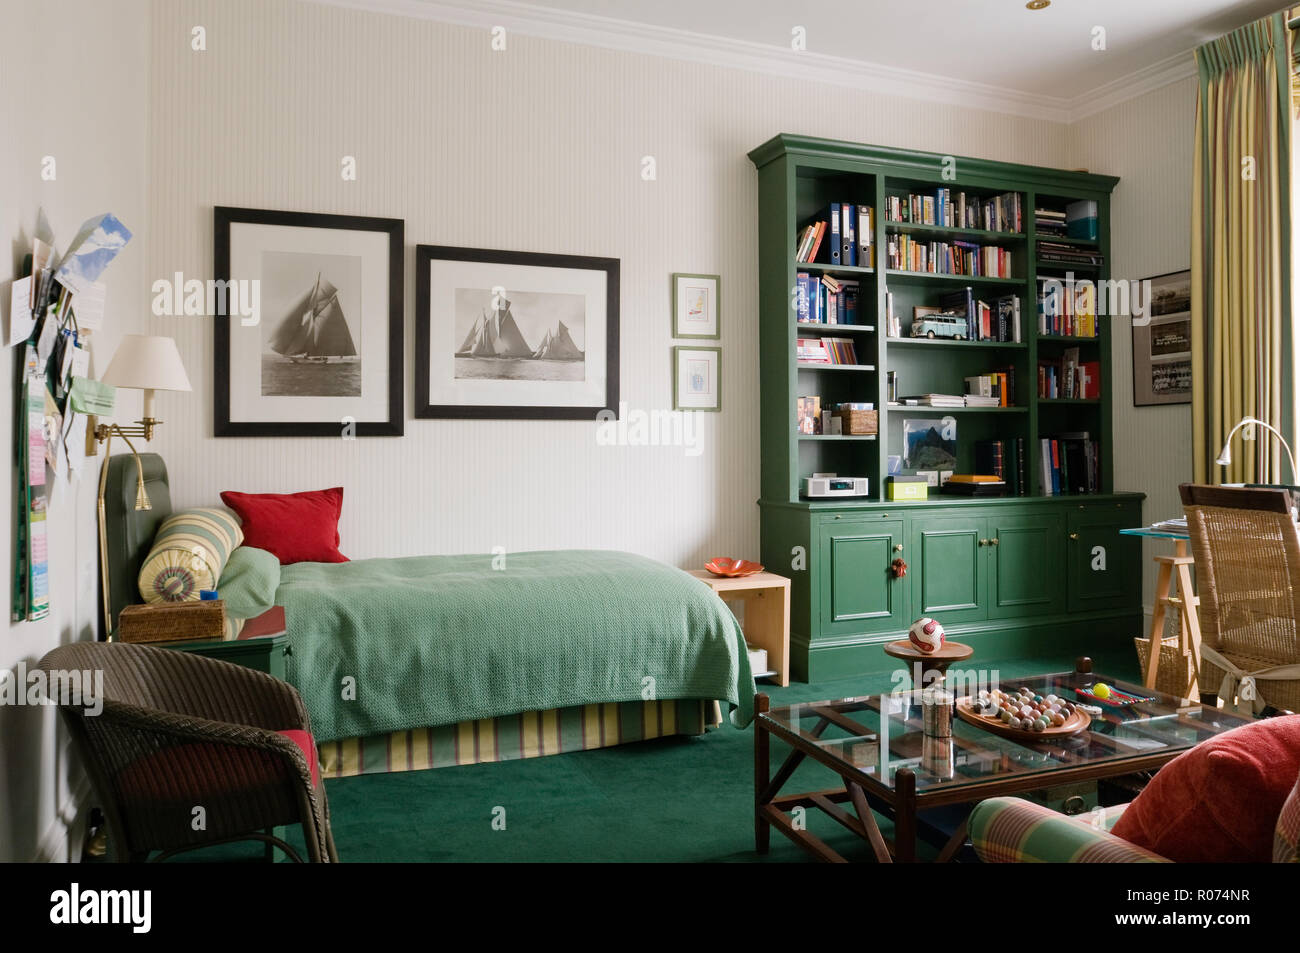 Storage Shelves Bedroom High Resolution Stock Photography And Images Alamy